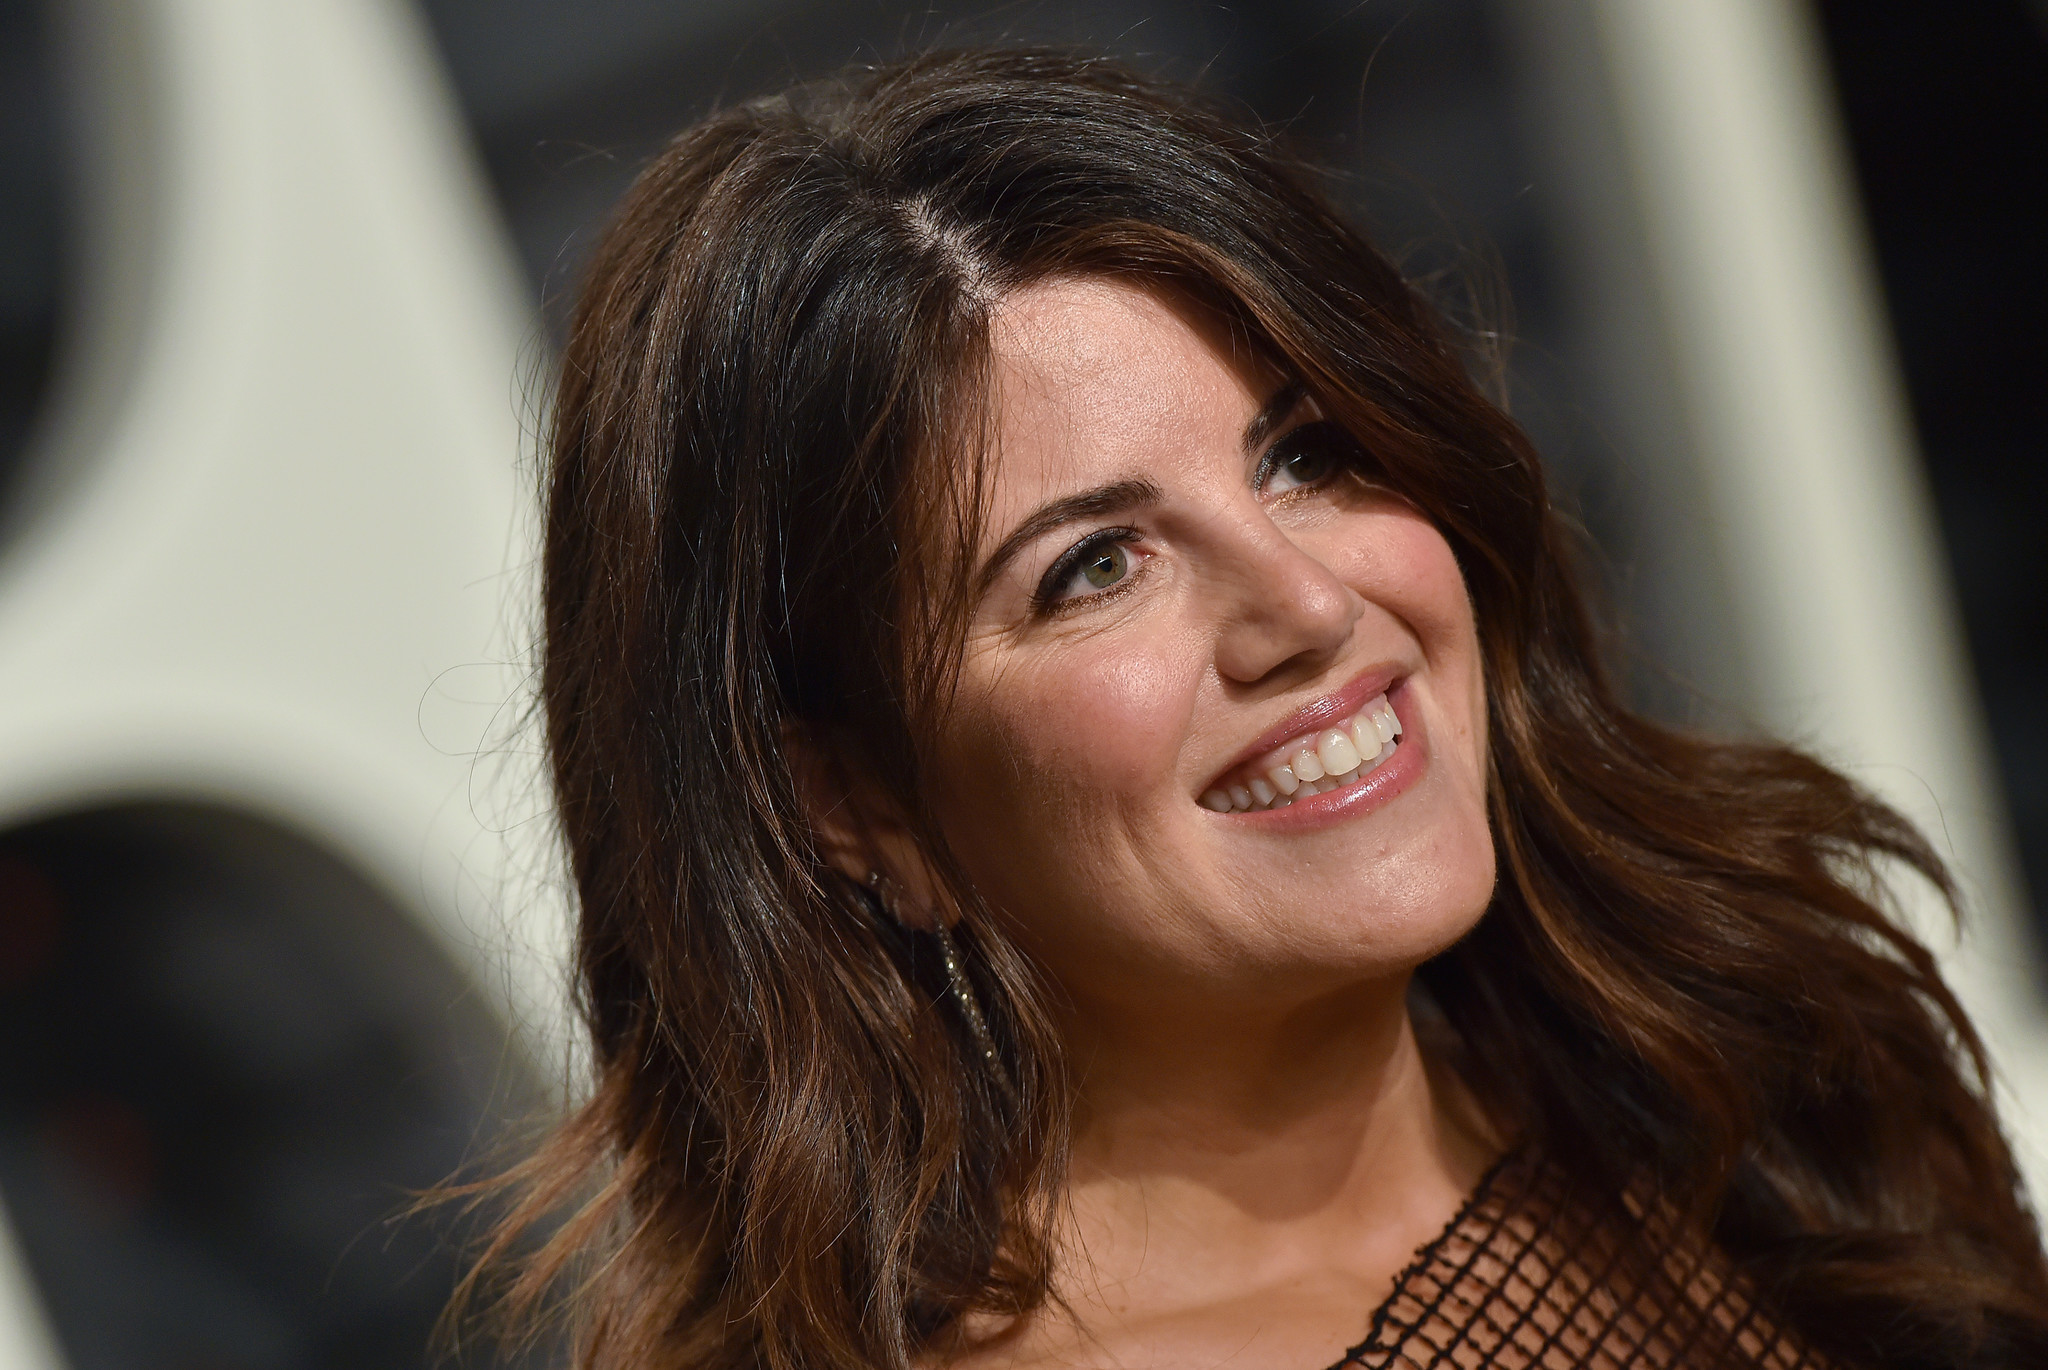 monica-lewinsky-storms-offstage-after-off-limits-clinton-question-chicago-tribune